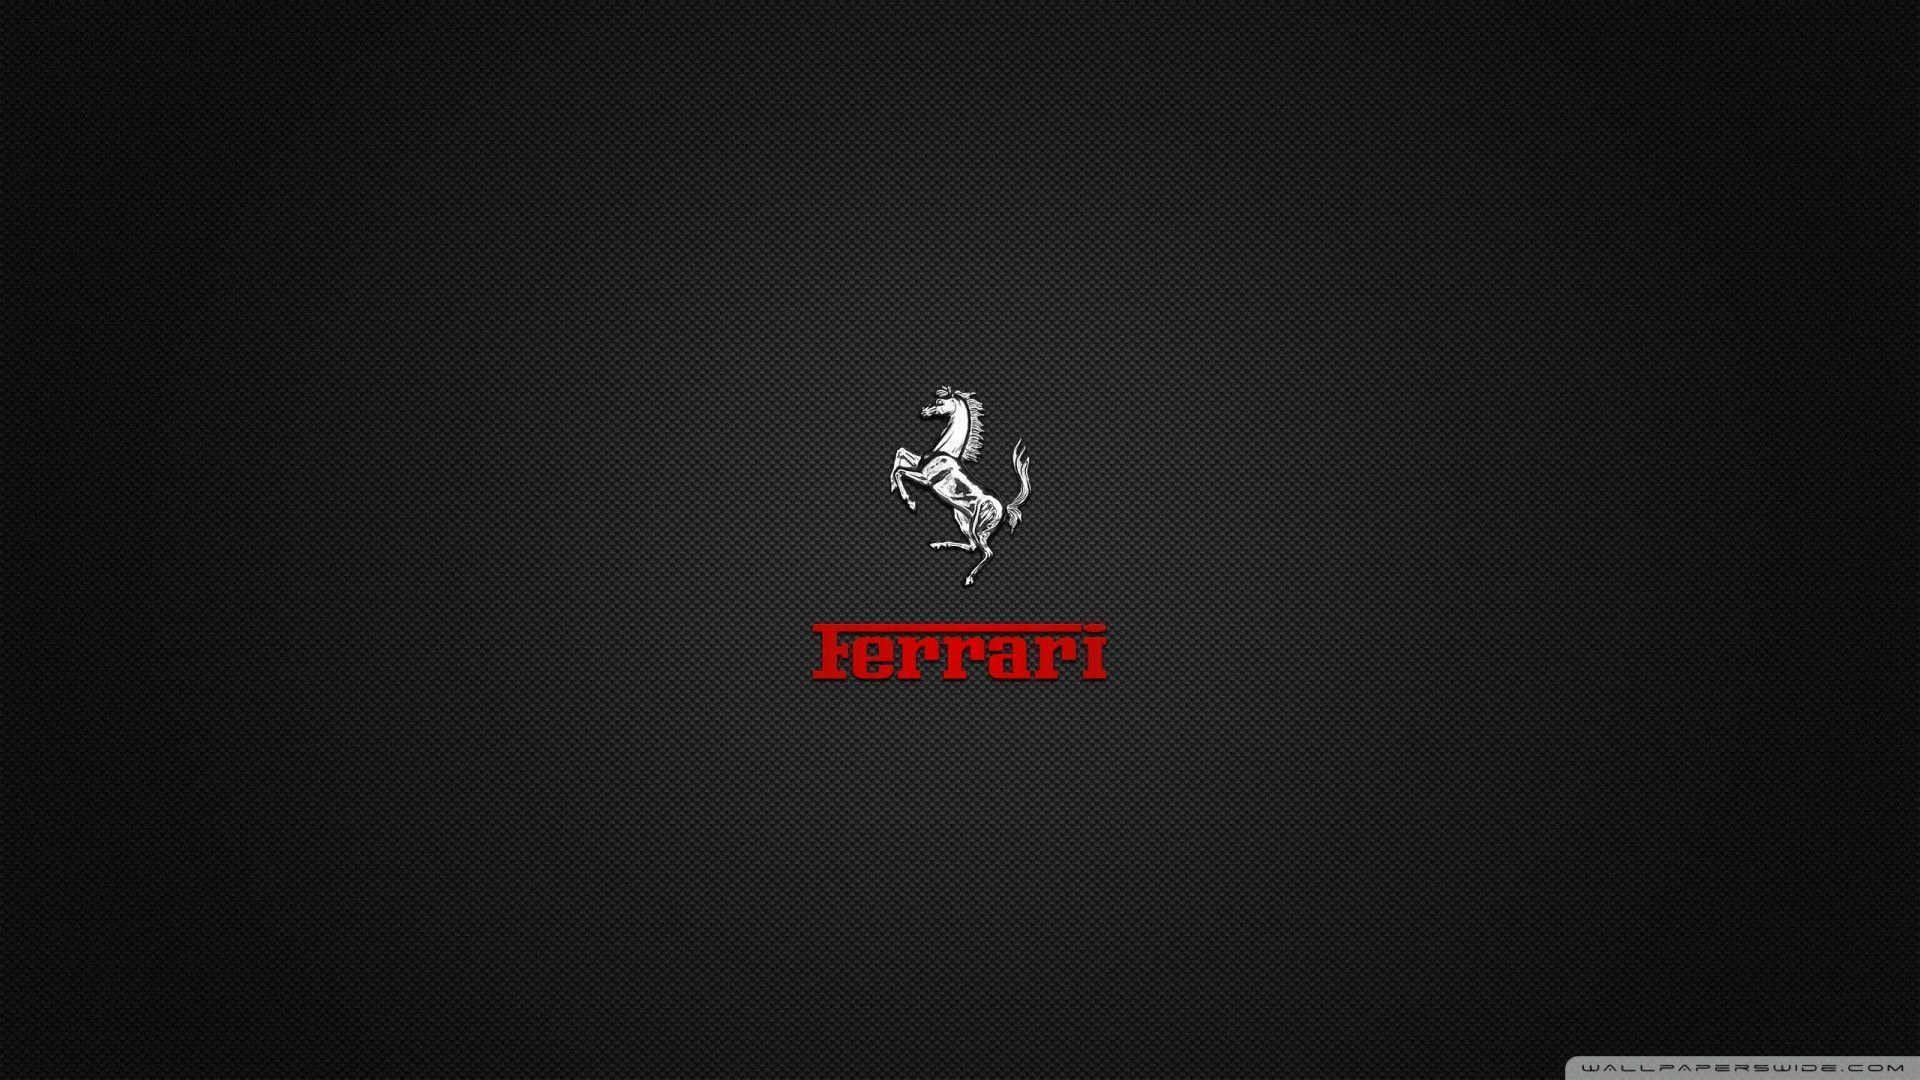 Cool Ferrari Logo Wallpaper - MixHD wallpapers